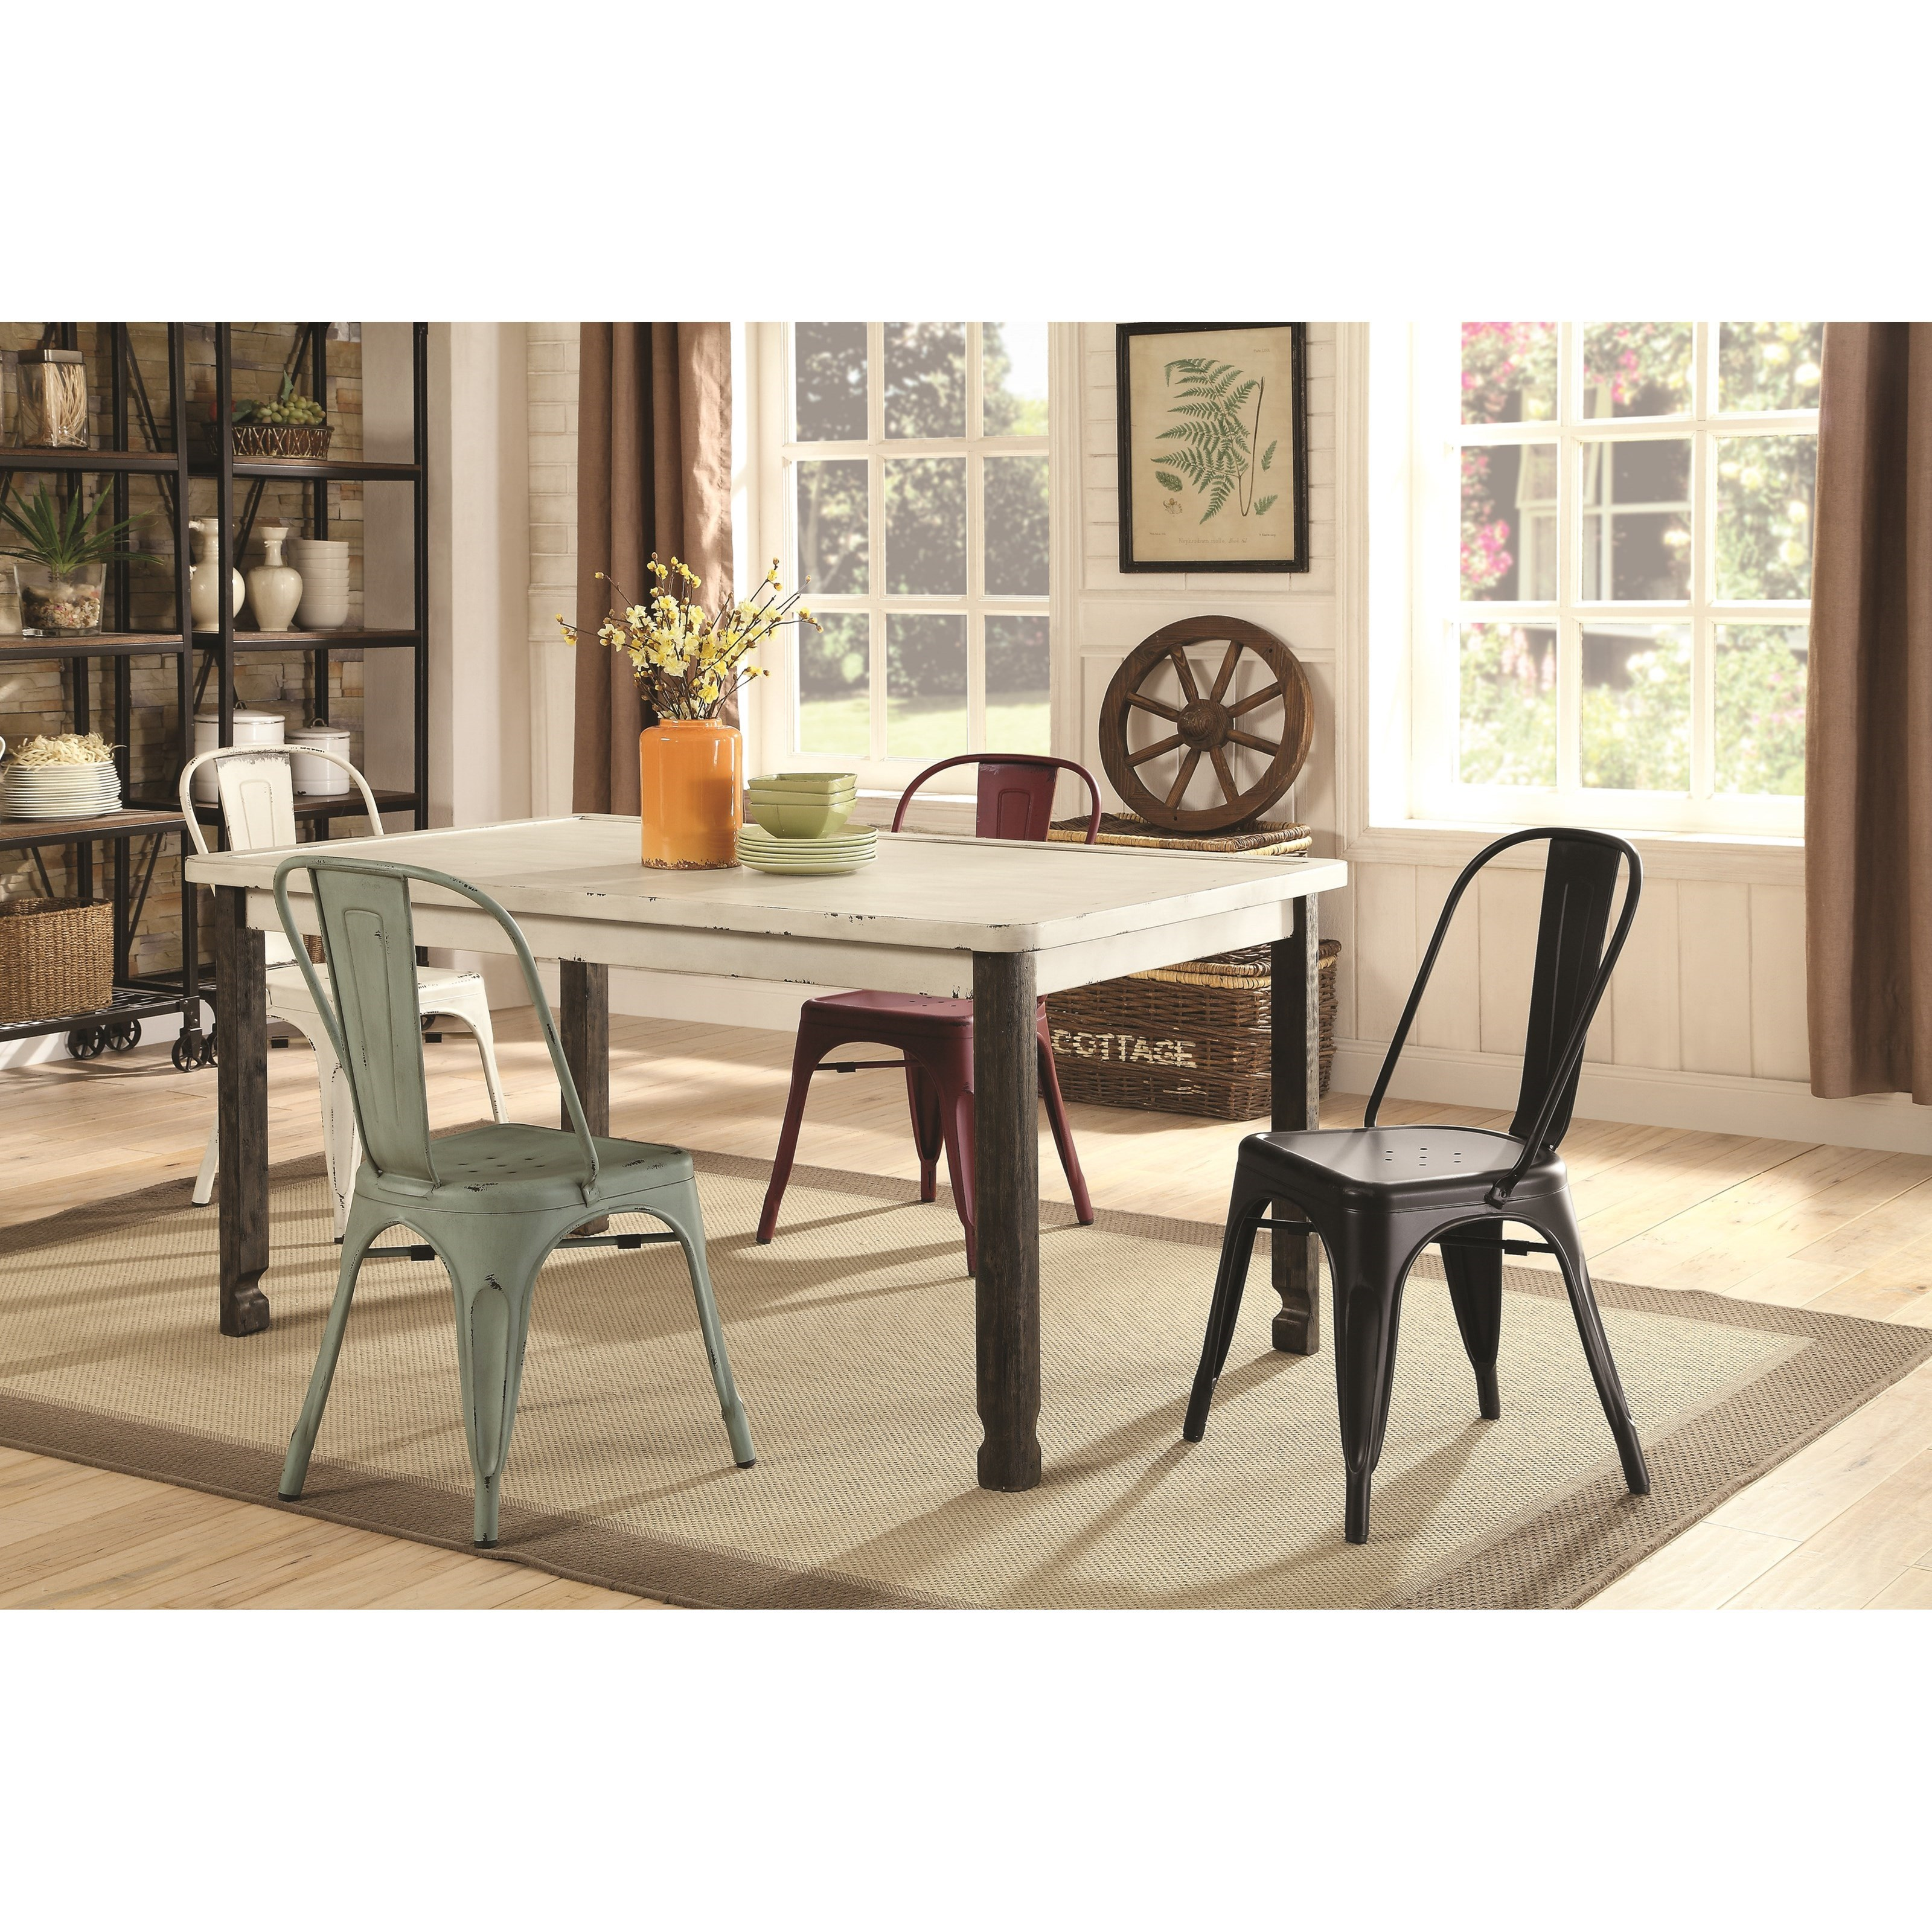 Vintage 5 Piece Rectangular Table and Chair Set by Coaster | Wolf ...